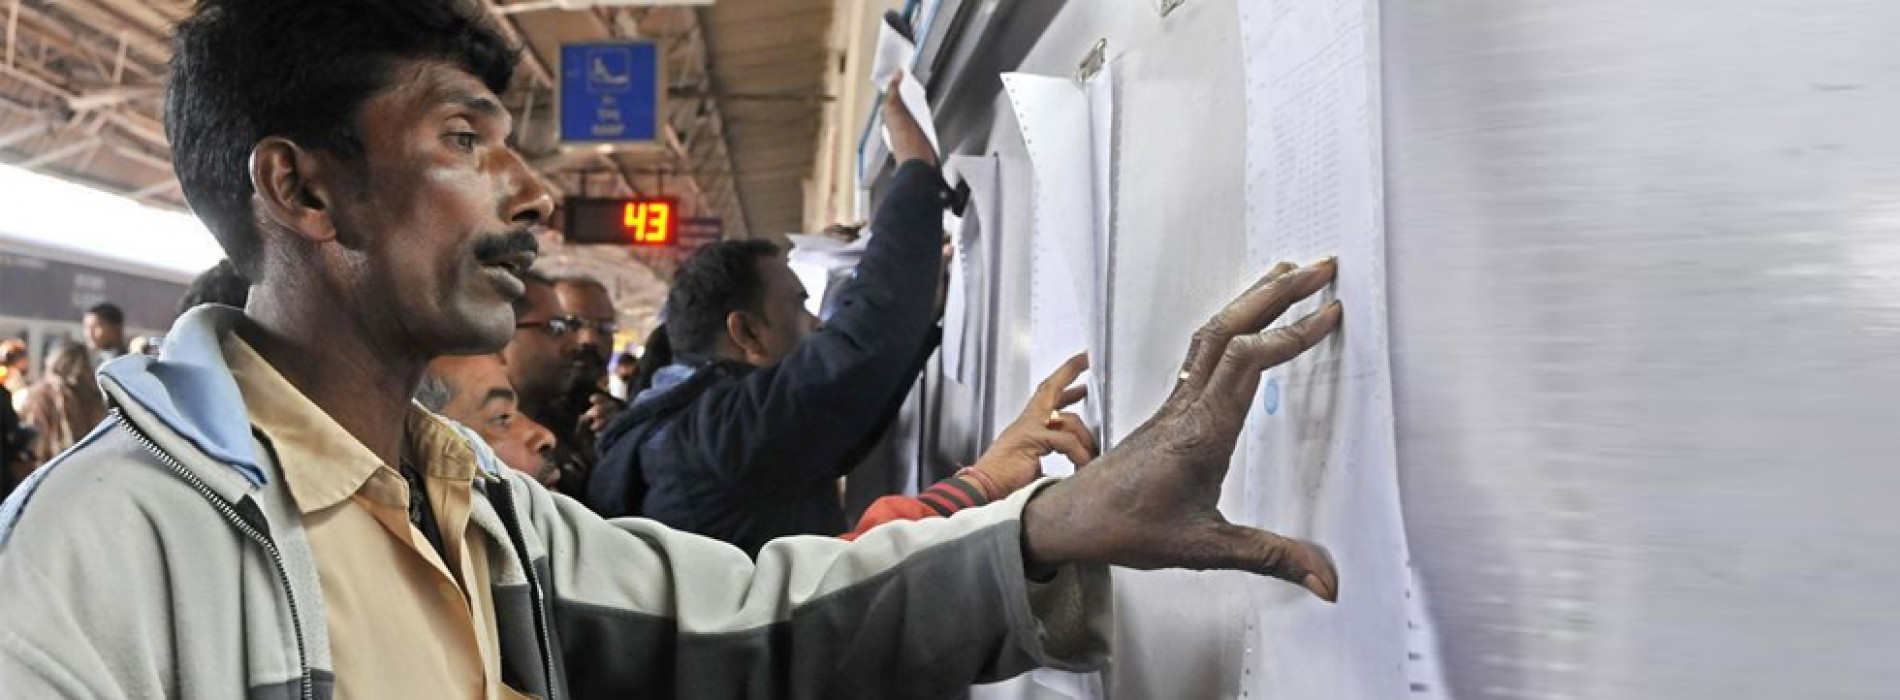 No more reservation charts on coaches in SER trains